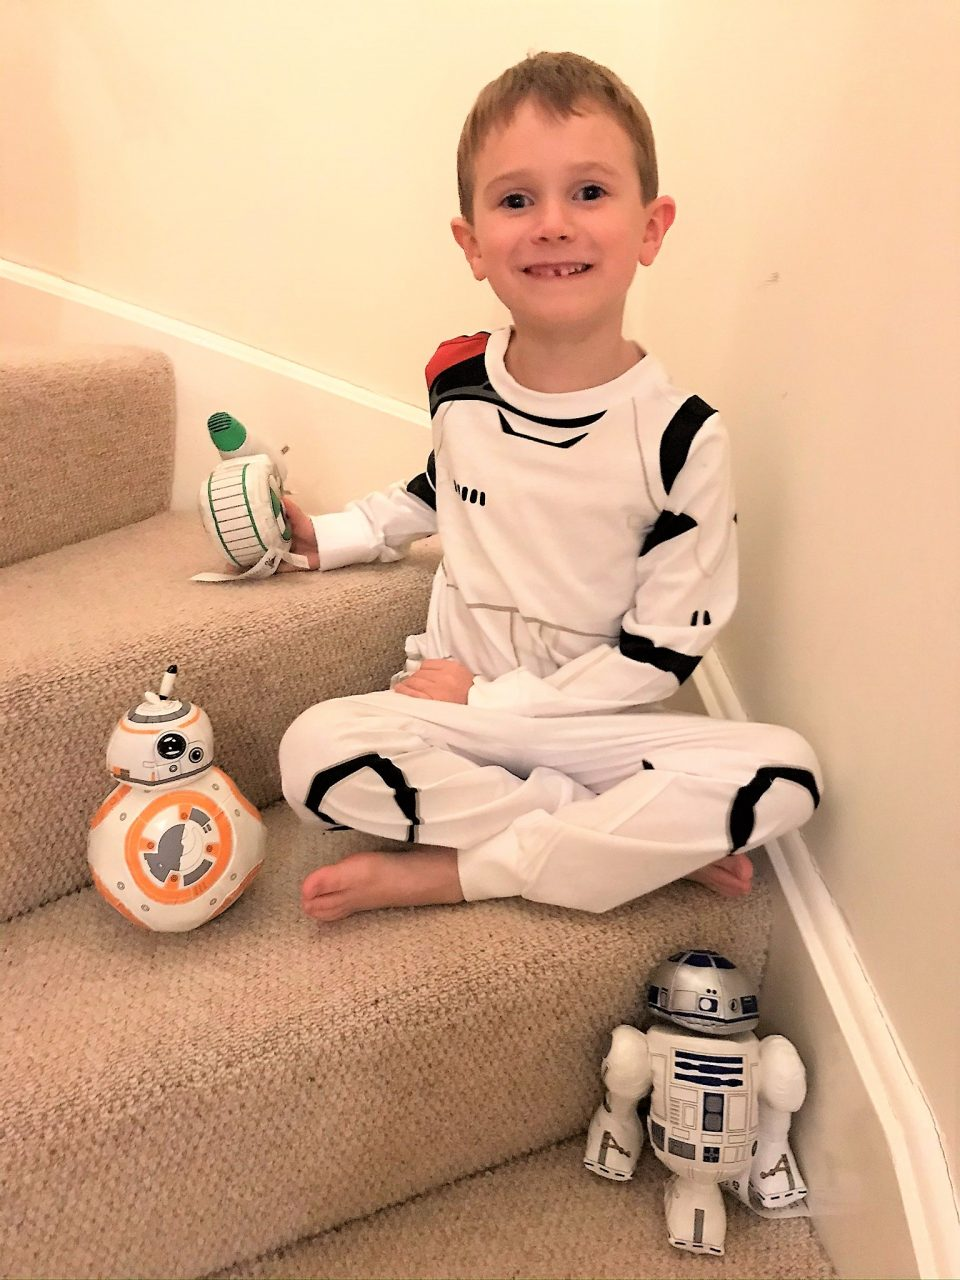 Jake sat on the stairs with his shopDisney products